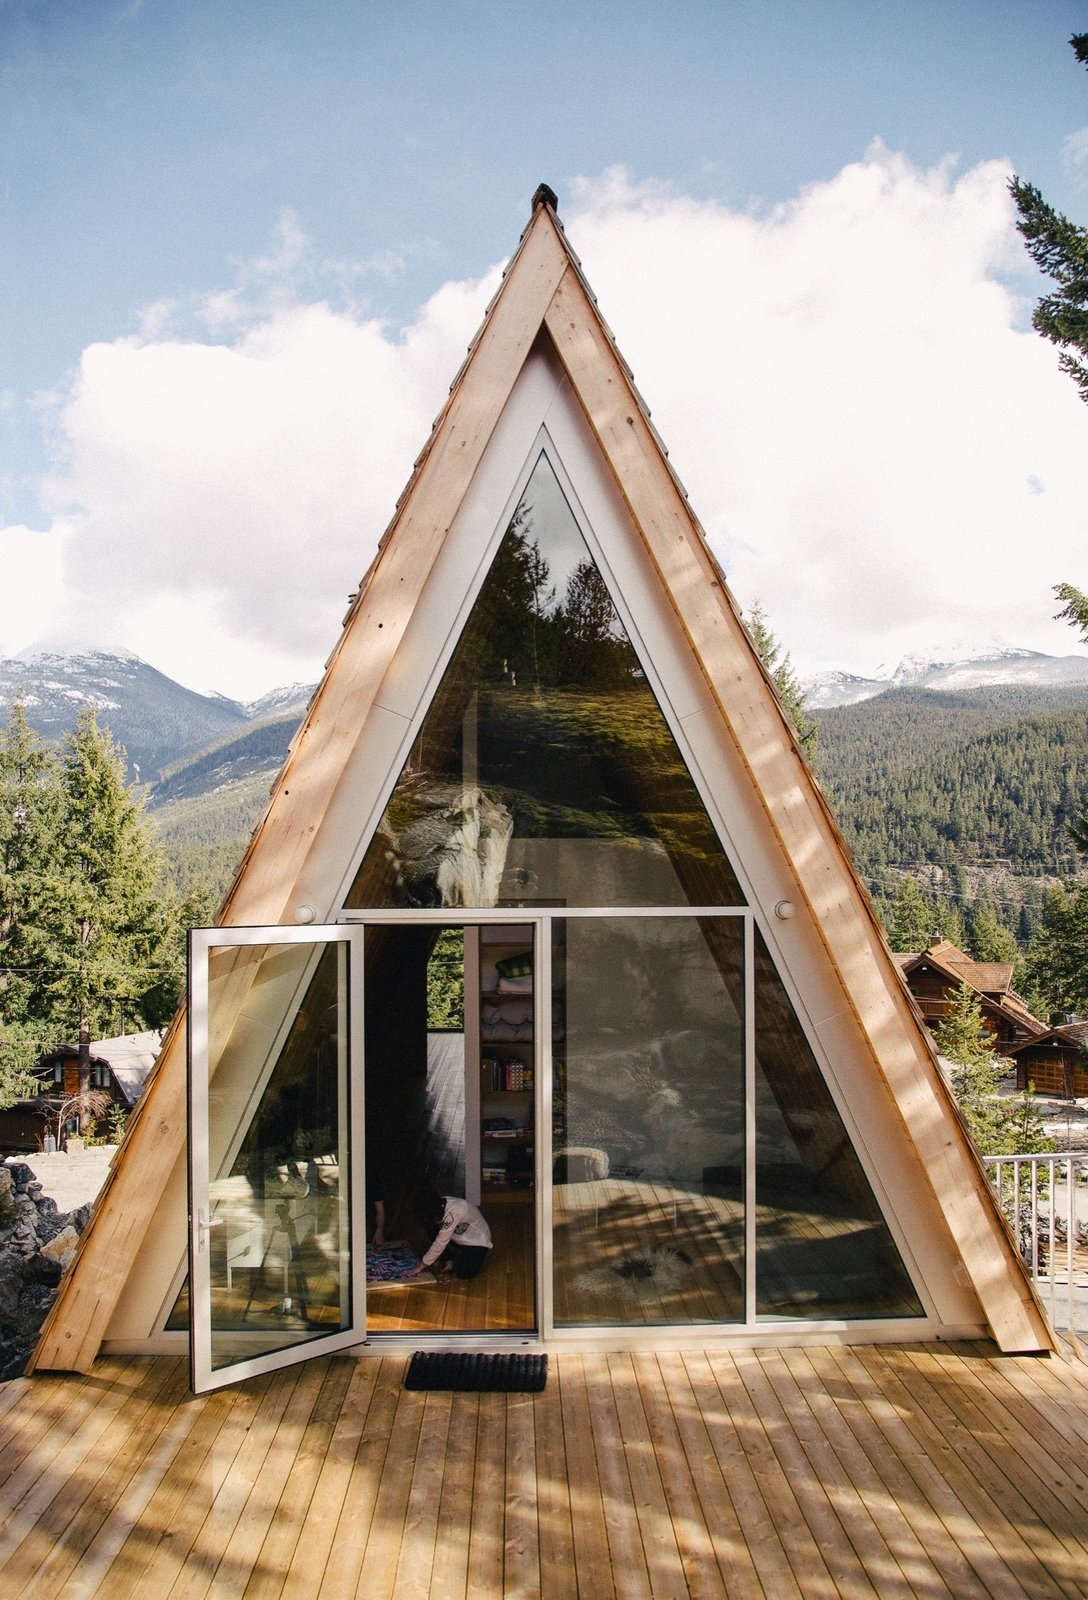 Exterior and A-Frame RoofLine A Whistler A-Frame | British Columbia, Canada  Scott & Scott Architects design an outdoorsy Vancouver family's dream cabin  Photos from Cabin Love